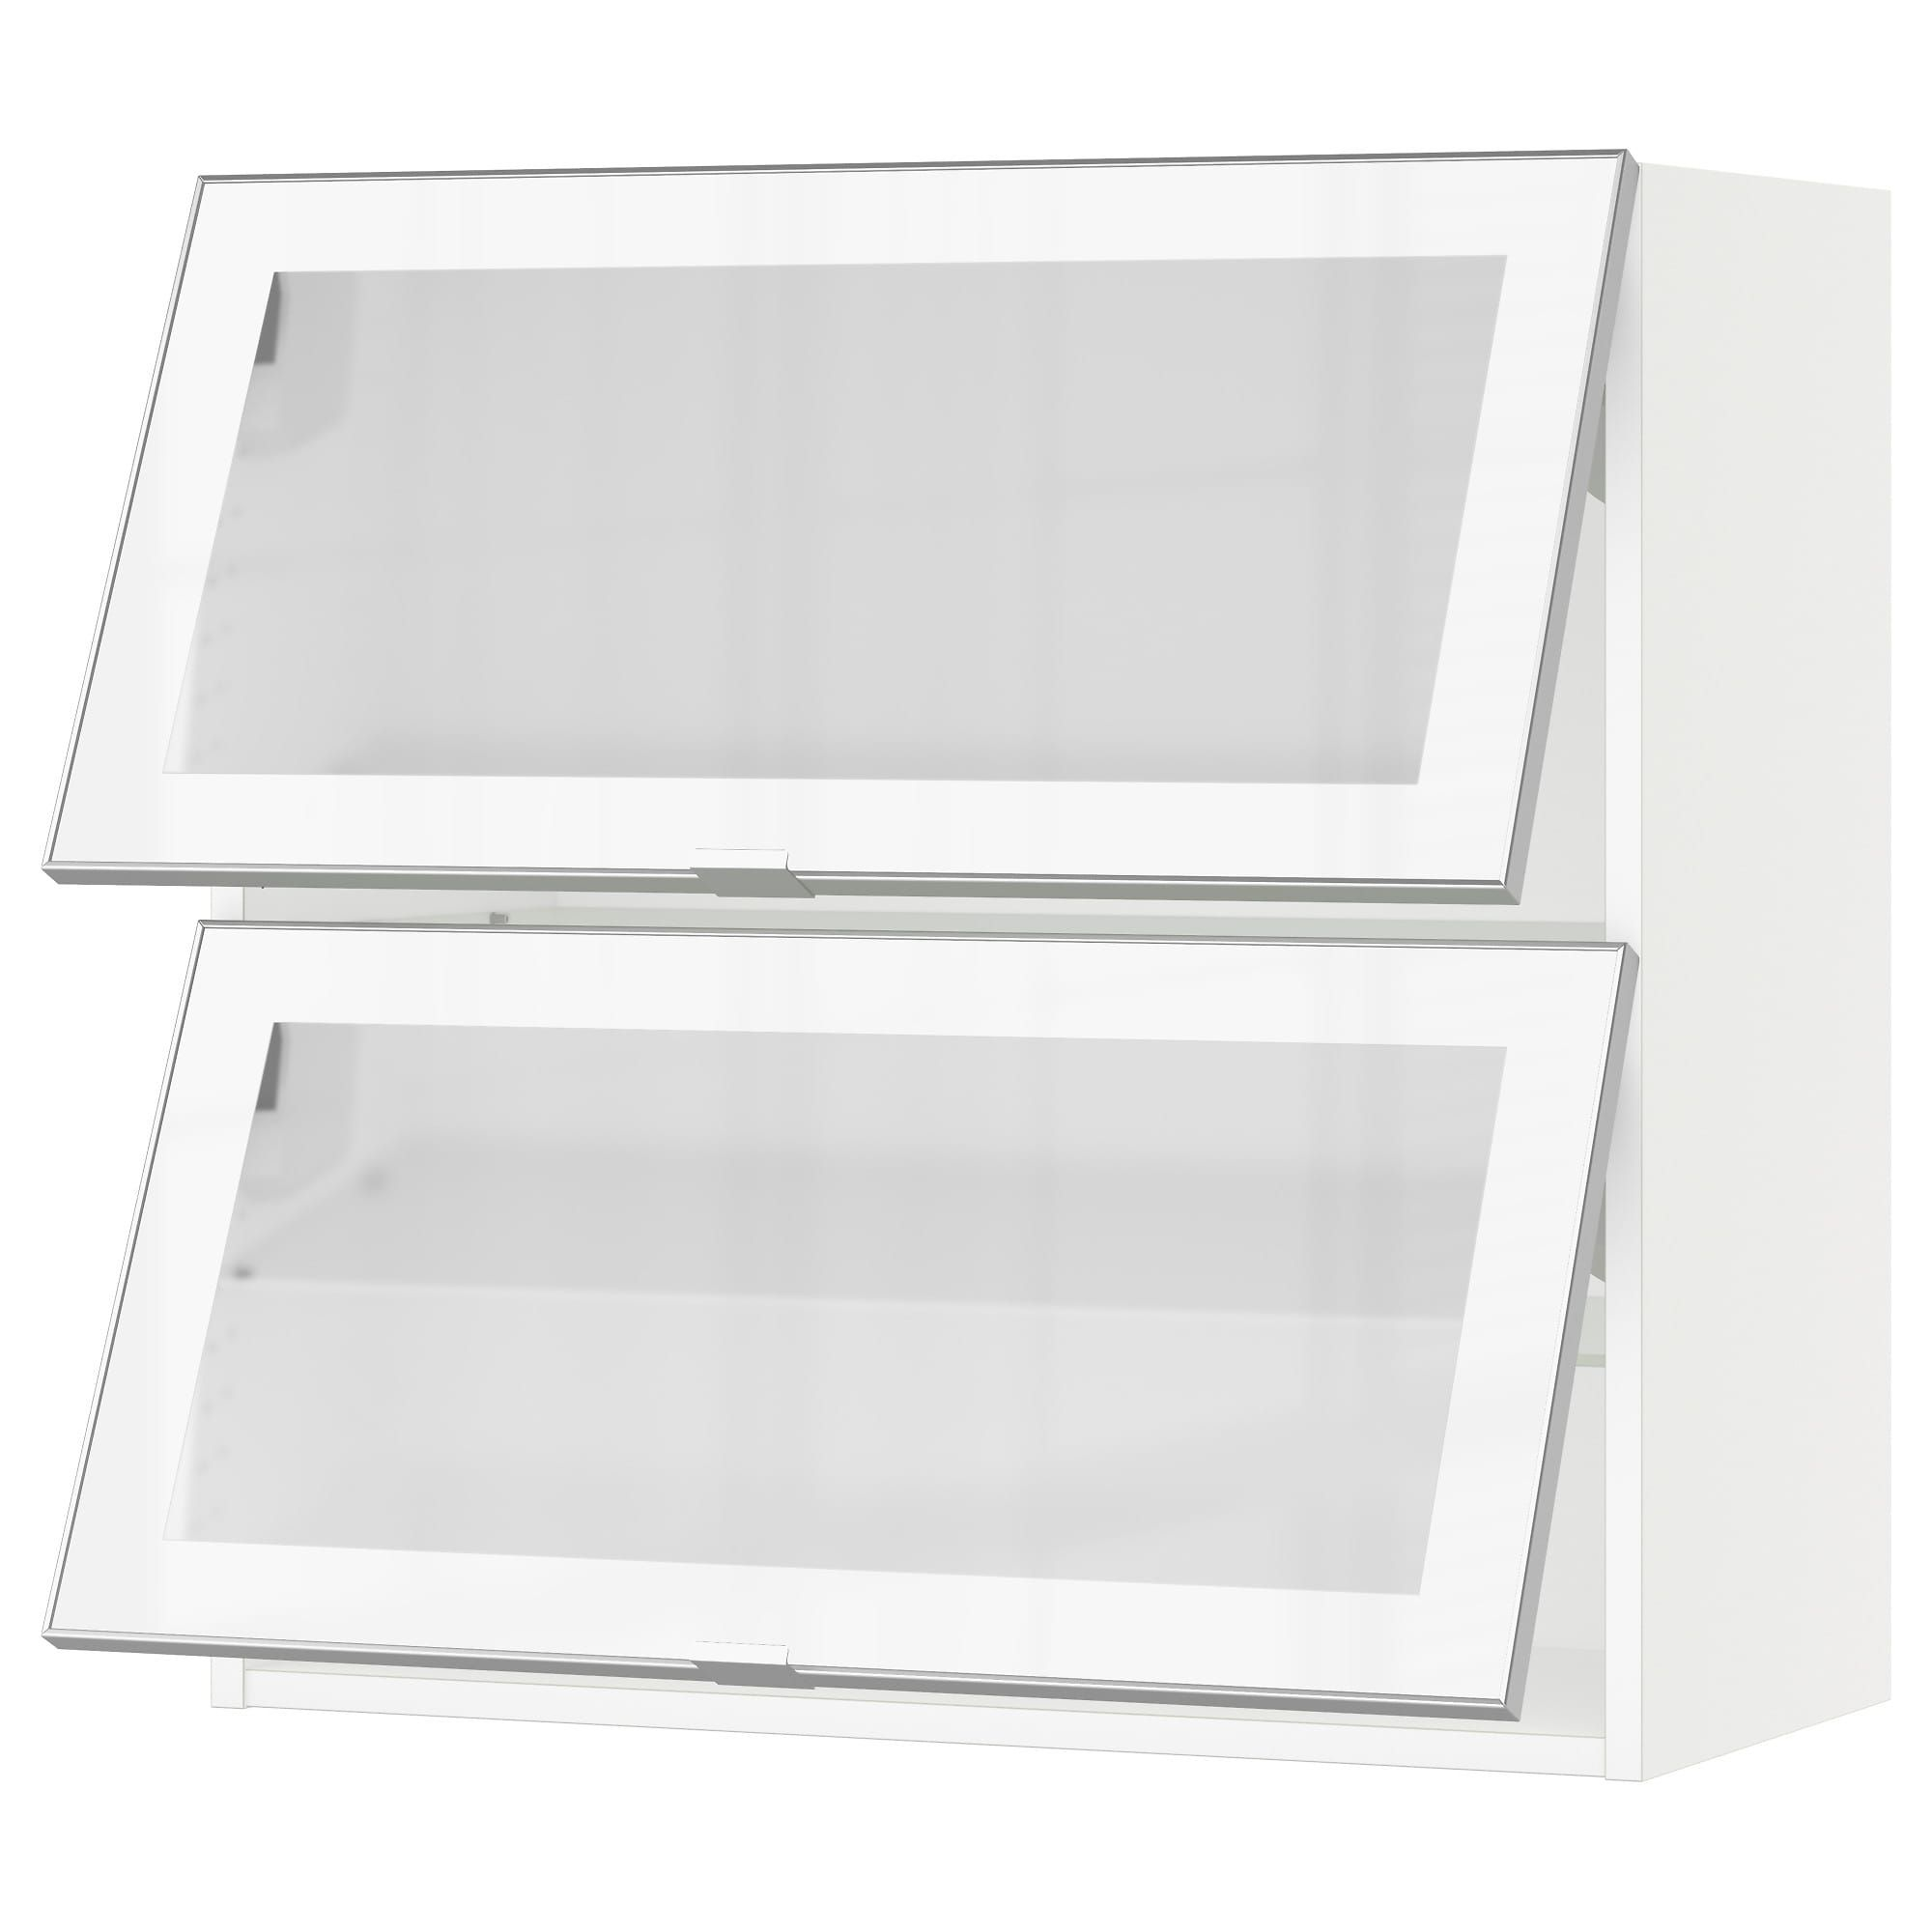 Ikea Us Furniture And Home Furnishings Kitchen Wall Cabinets Wall Cabinet Glass Shelves Kitchen